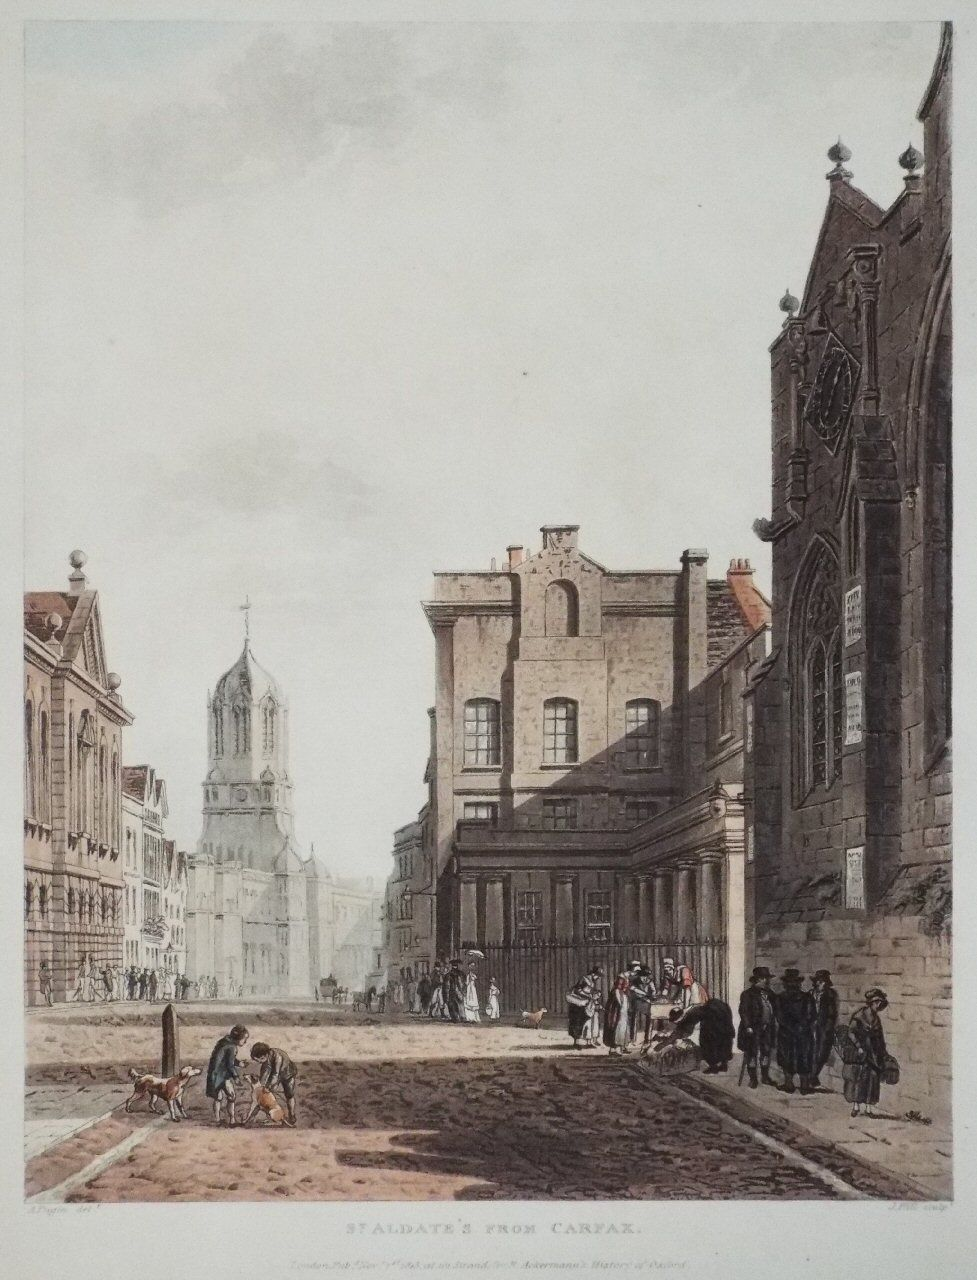 St. Aldate's from Carfax, 1813